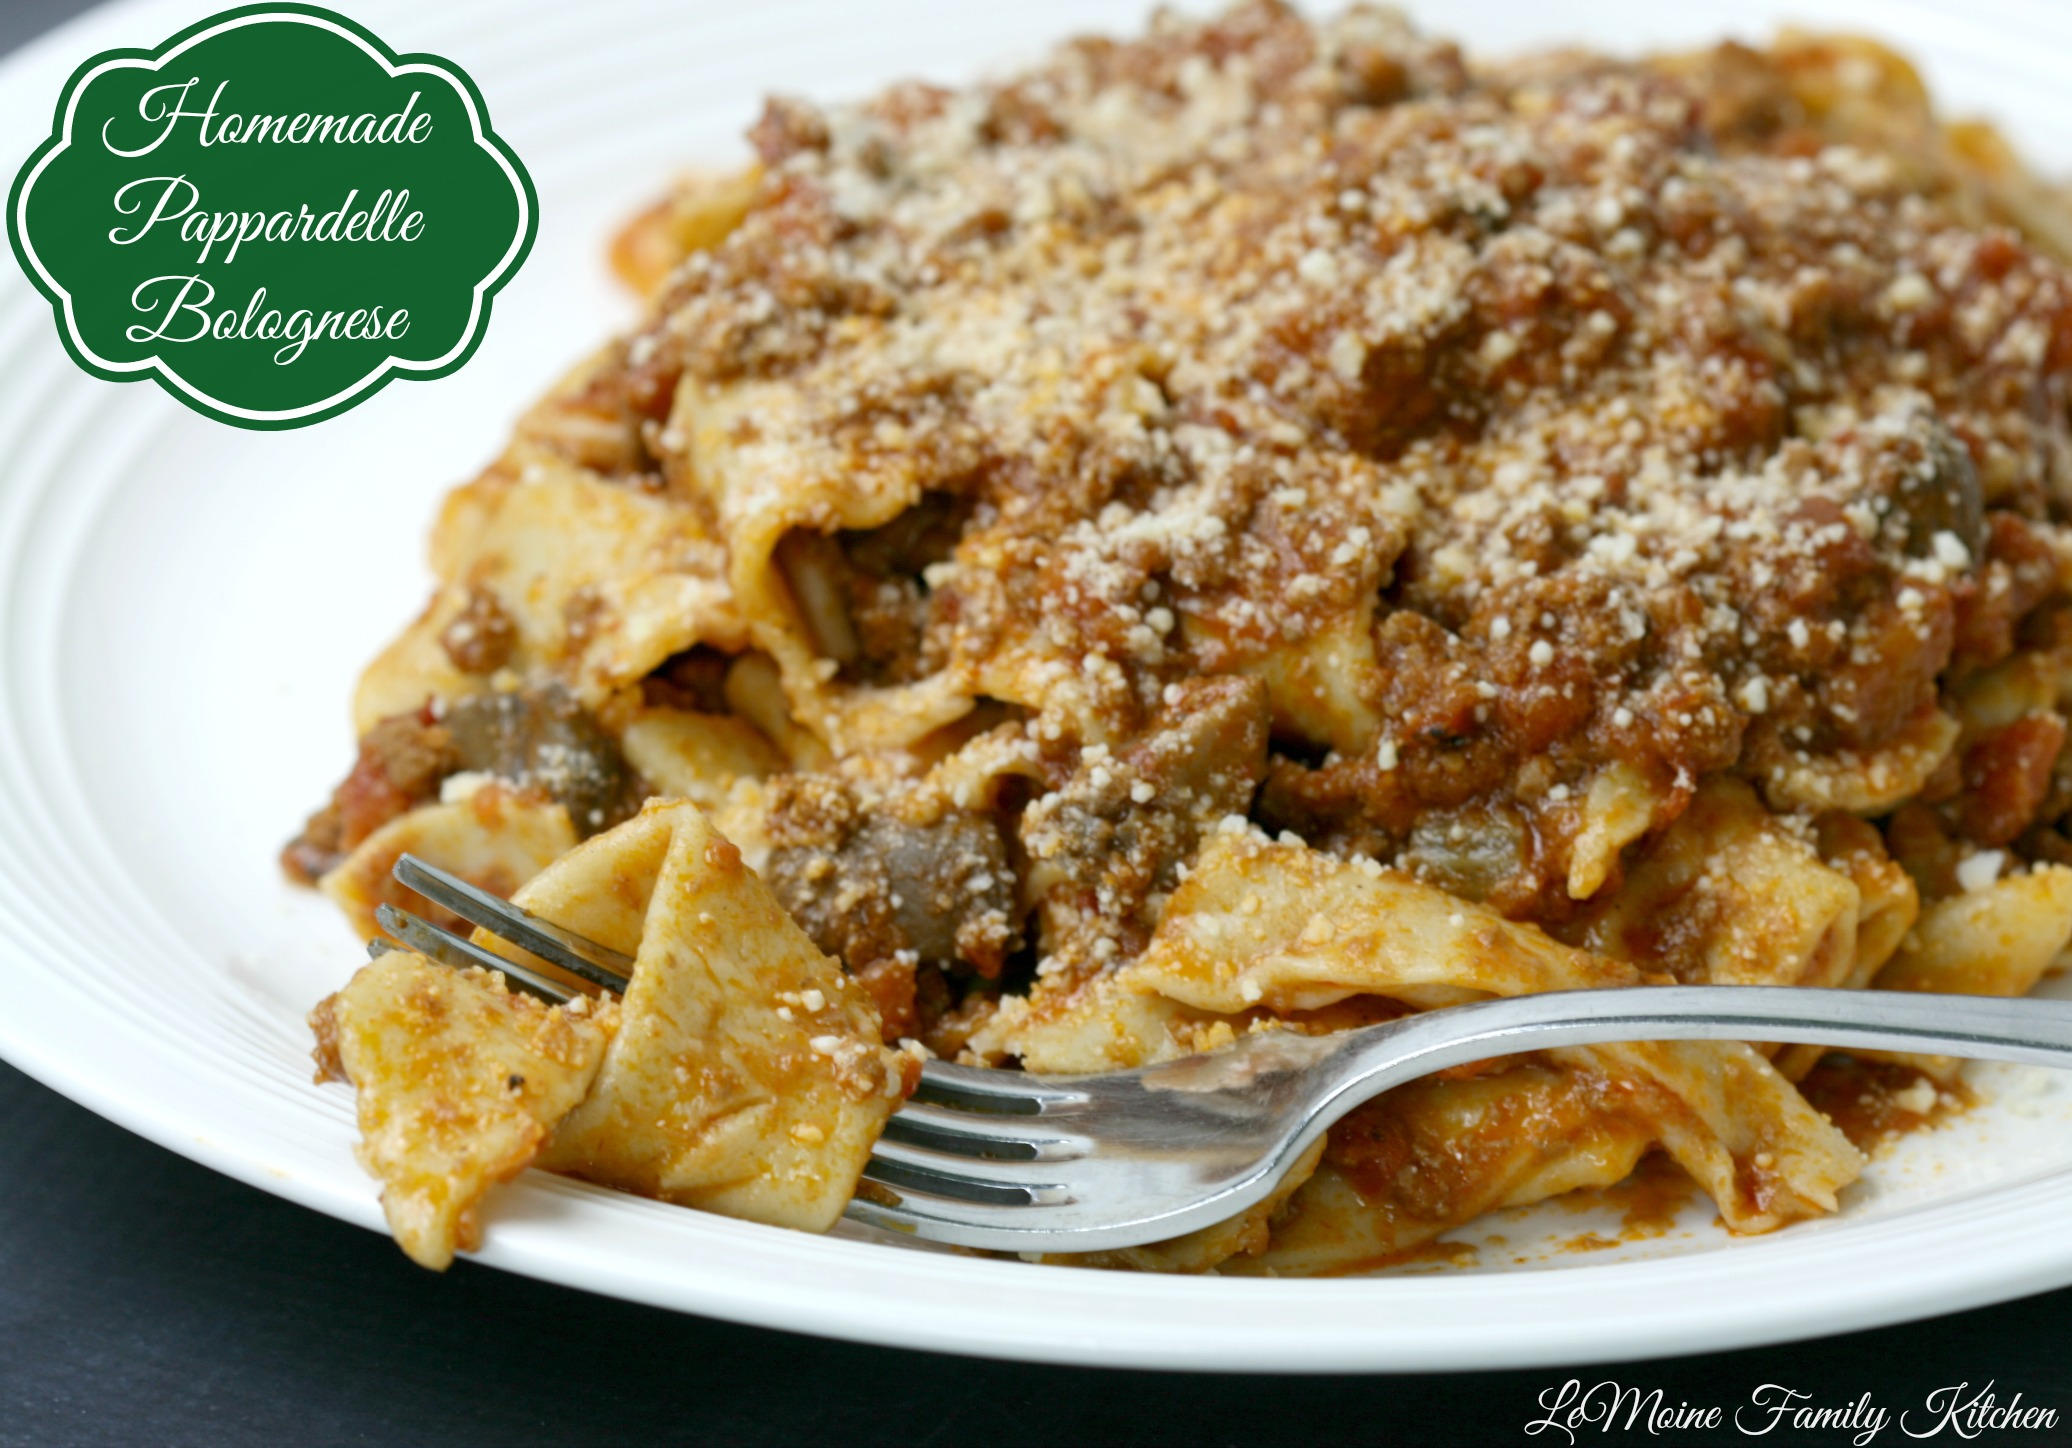 ... homemade pasta topped with the BEST Bolognese Sauce! The sauce is